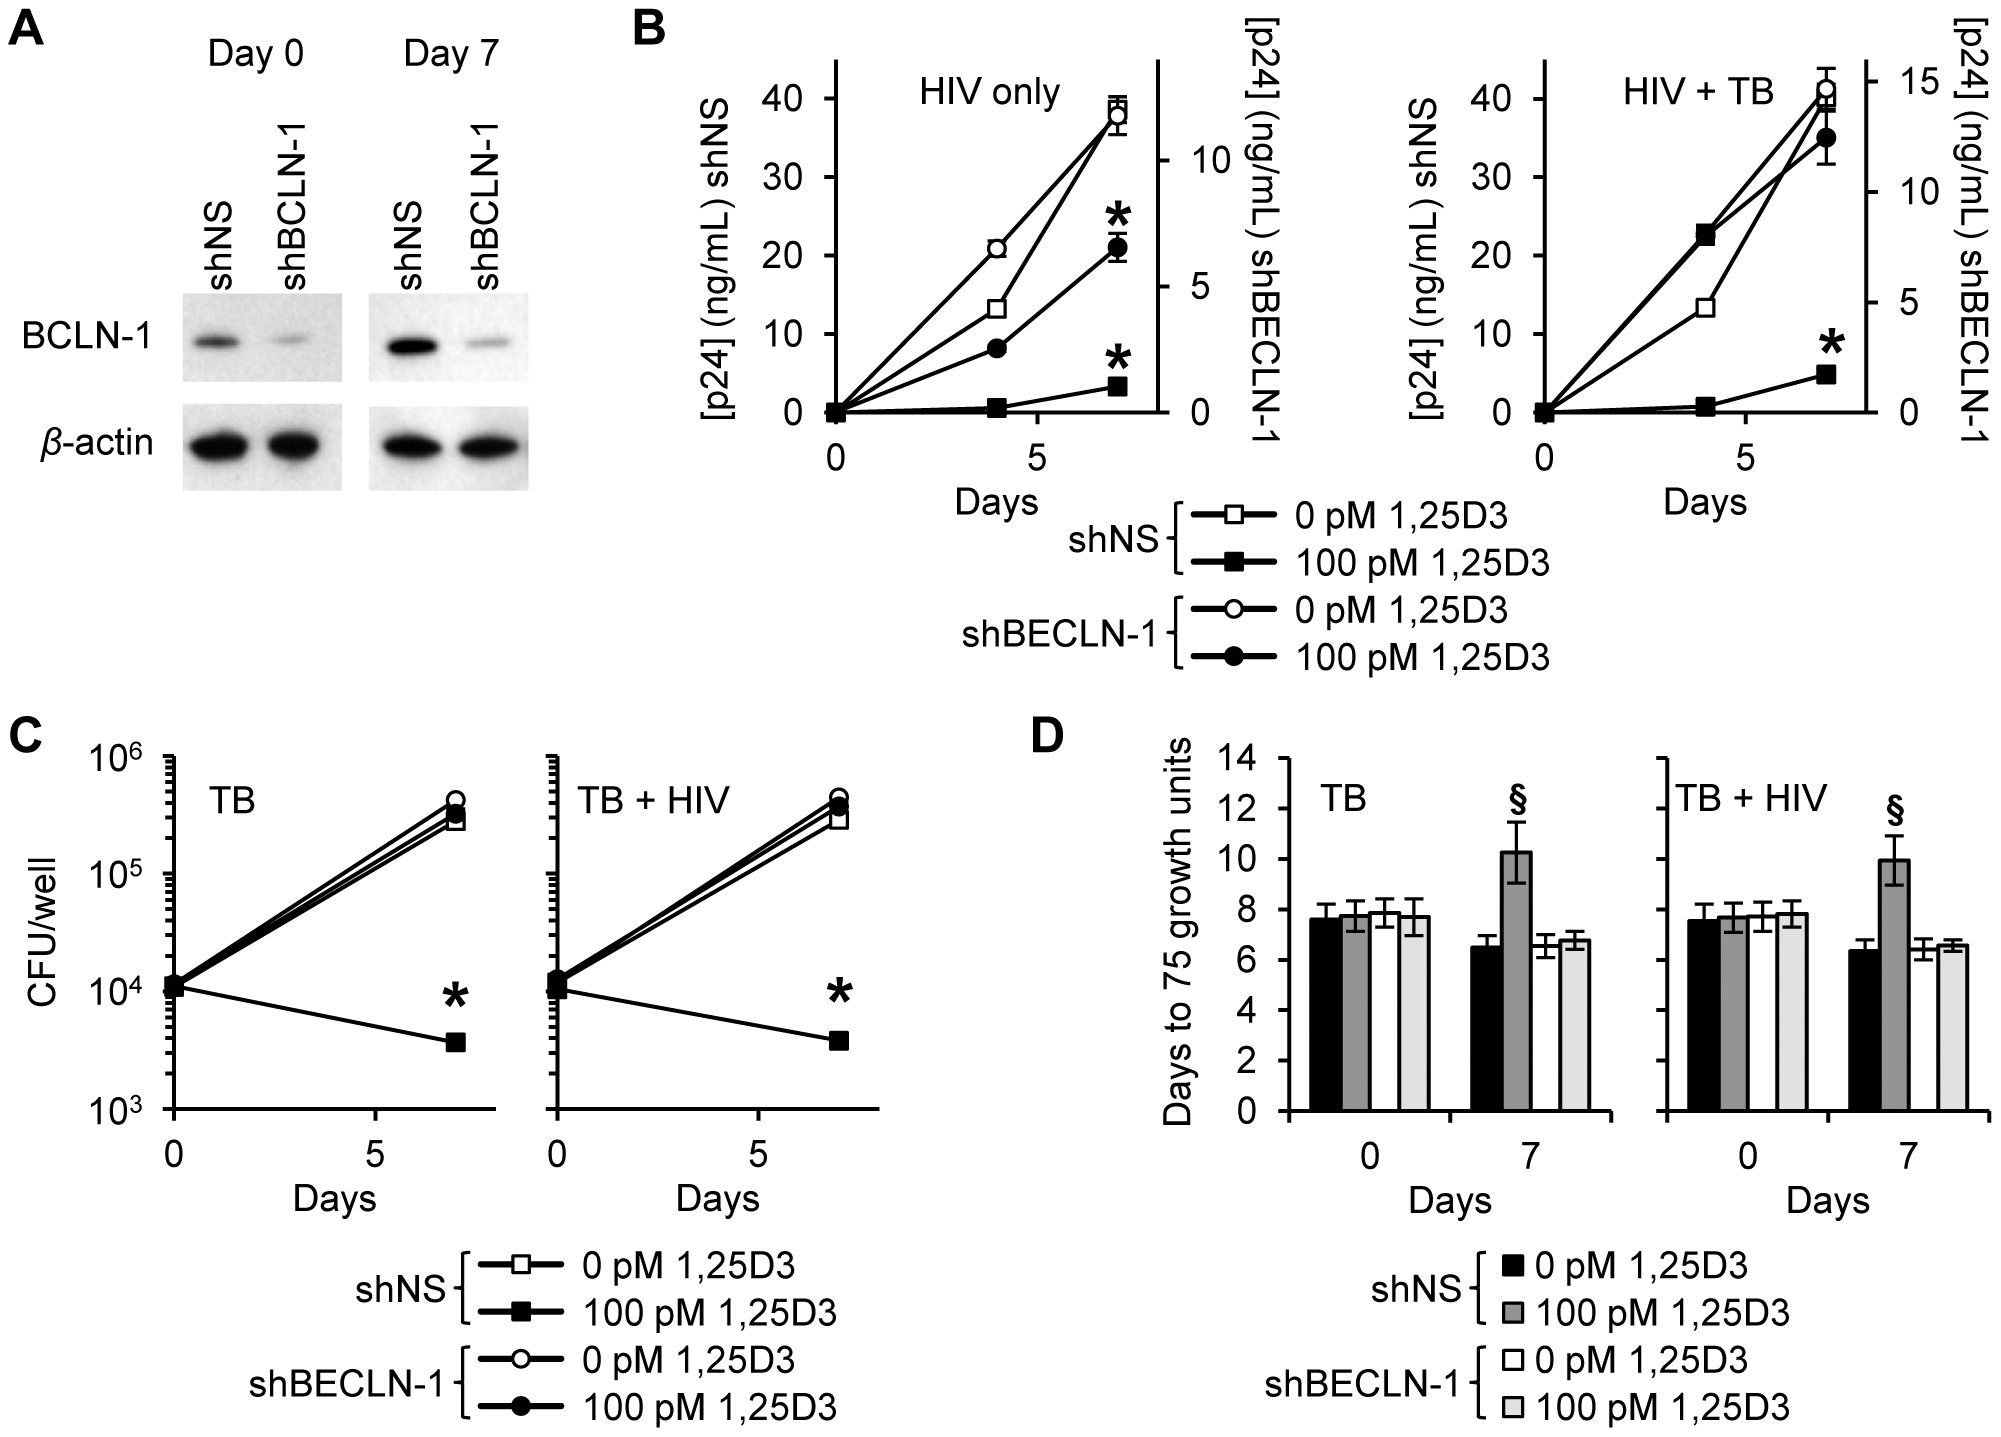 1,25D3 inhibition of HIV and <i>M. tuberculosis</i> is Beclin-1 dependent.